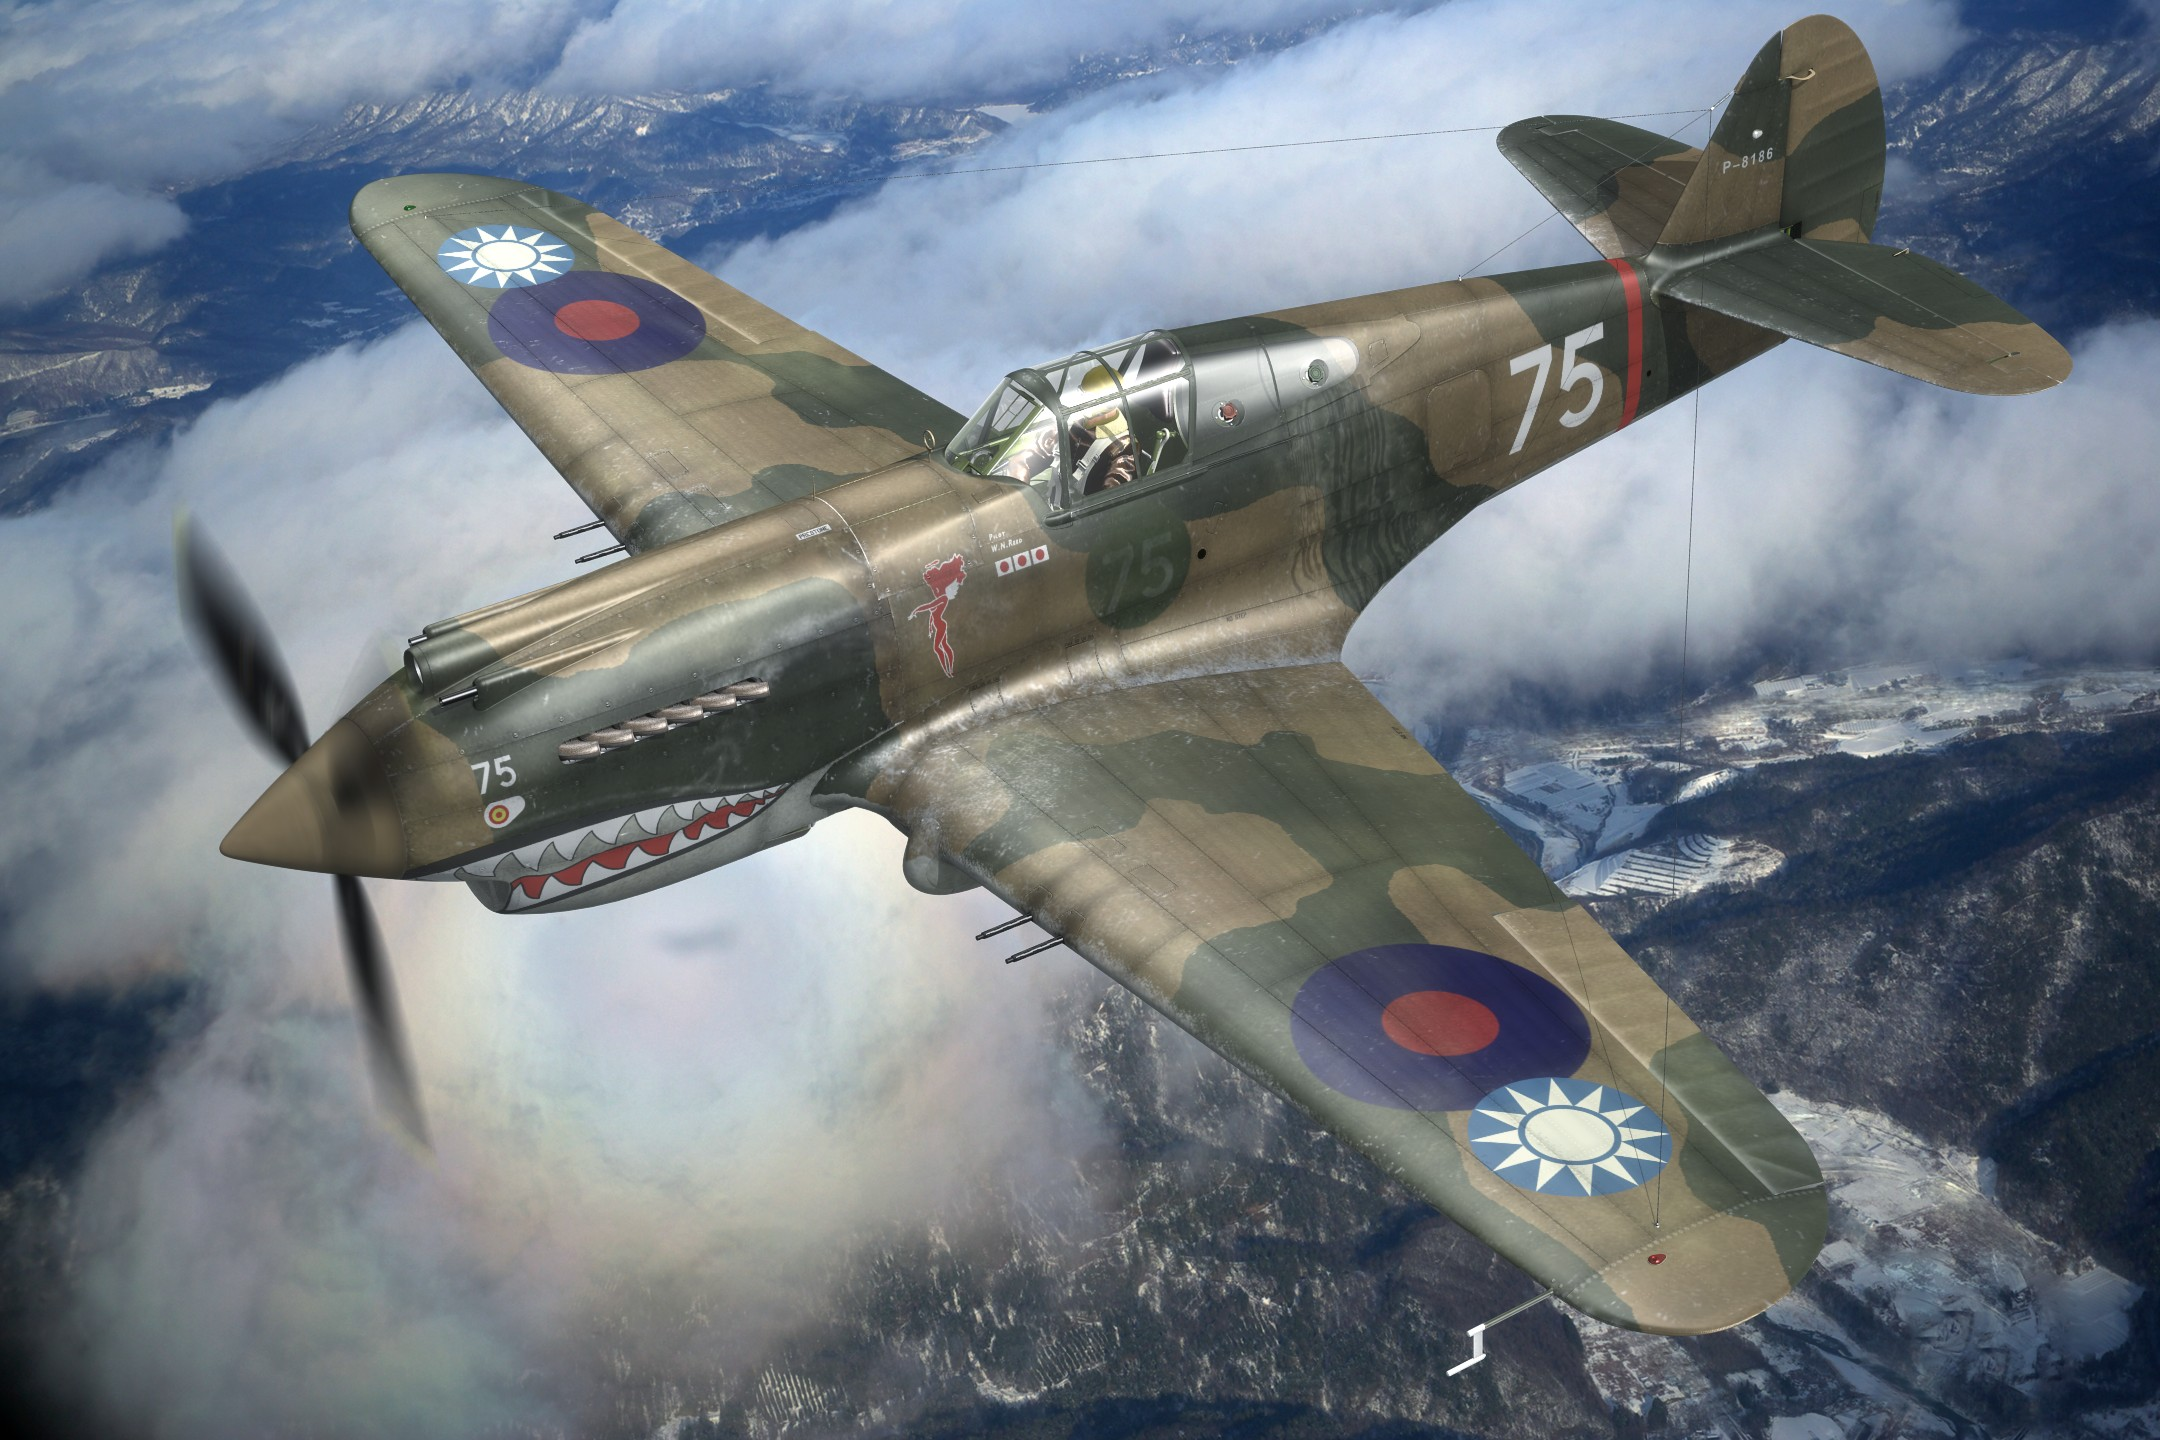 Undefined Cool Wallpaper For Iphone 40 Wallpapers: P-40 Full HD Wallpaper And Background Image